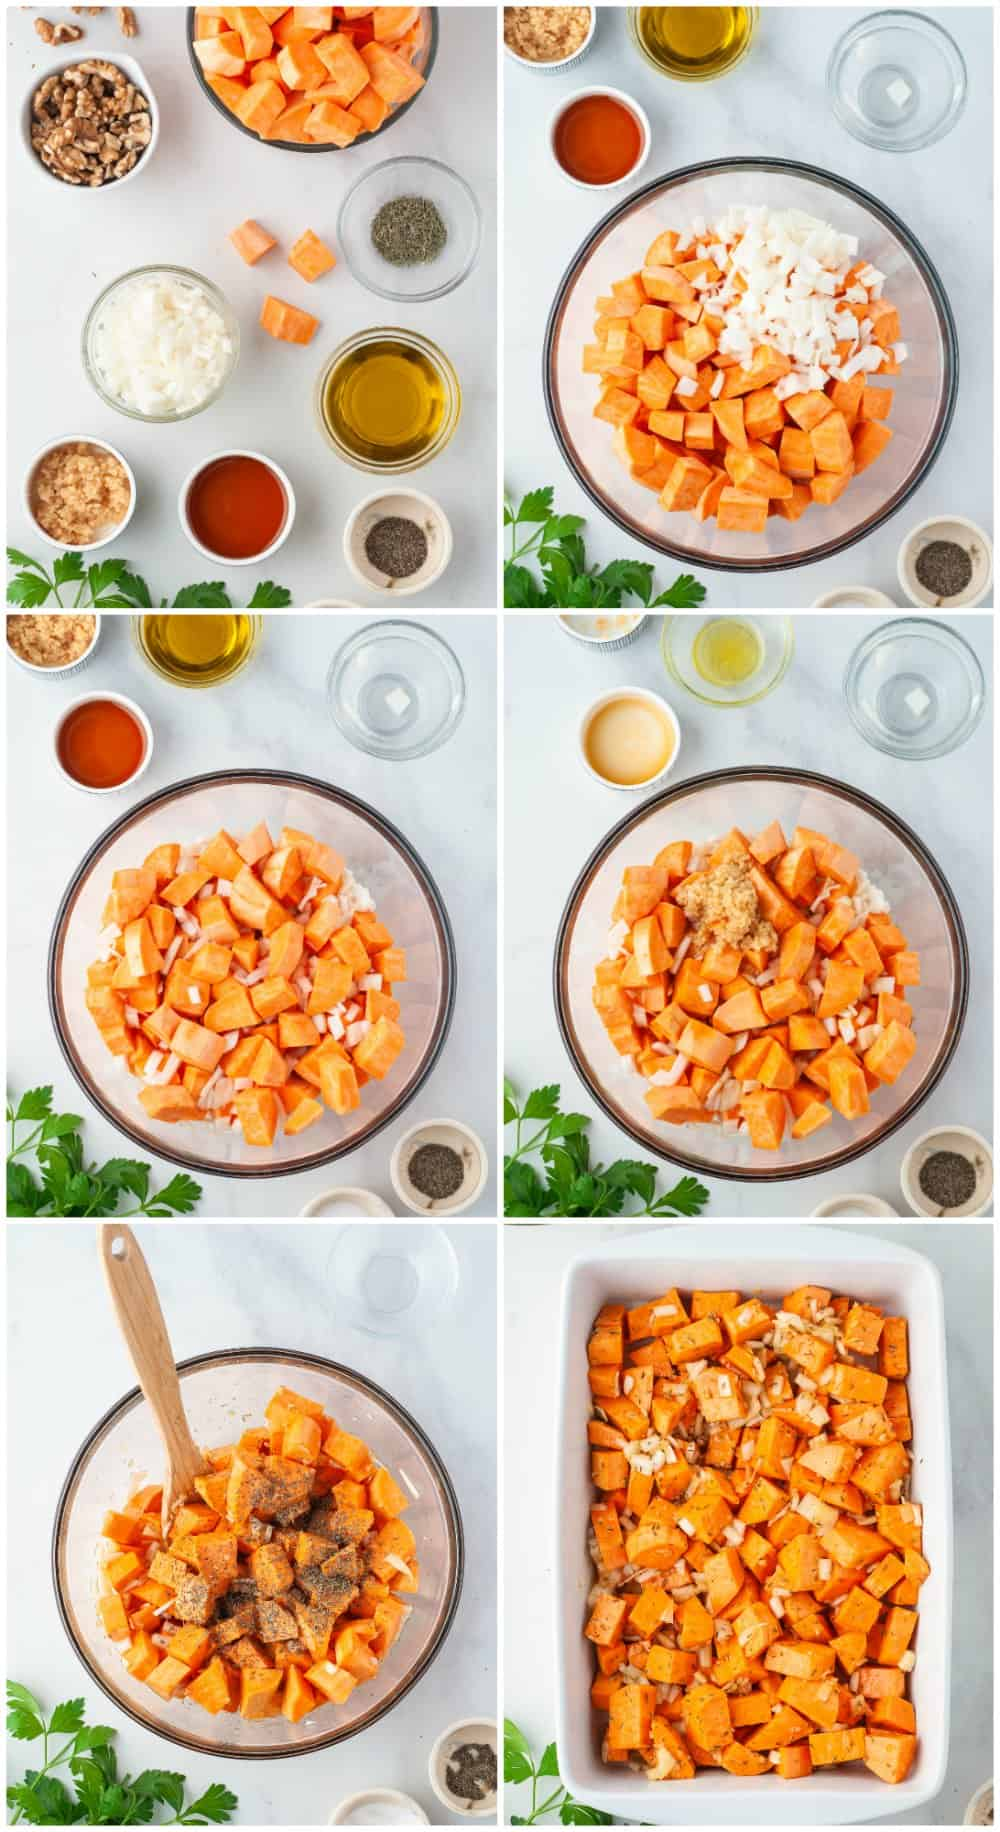 step by step photos of how to make roasted sweet potatoes